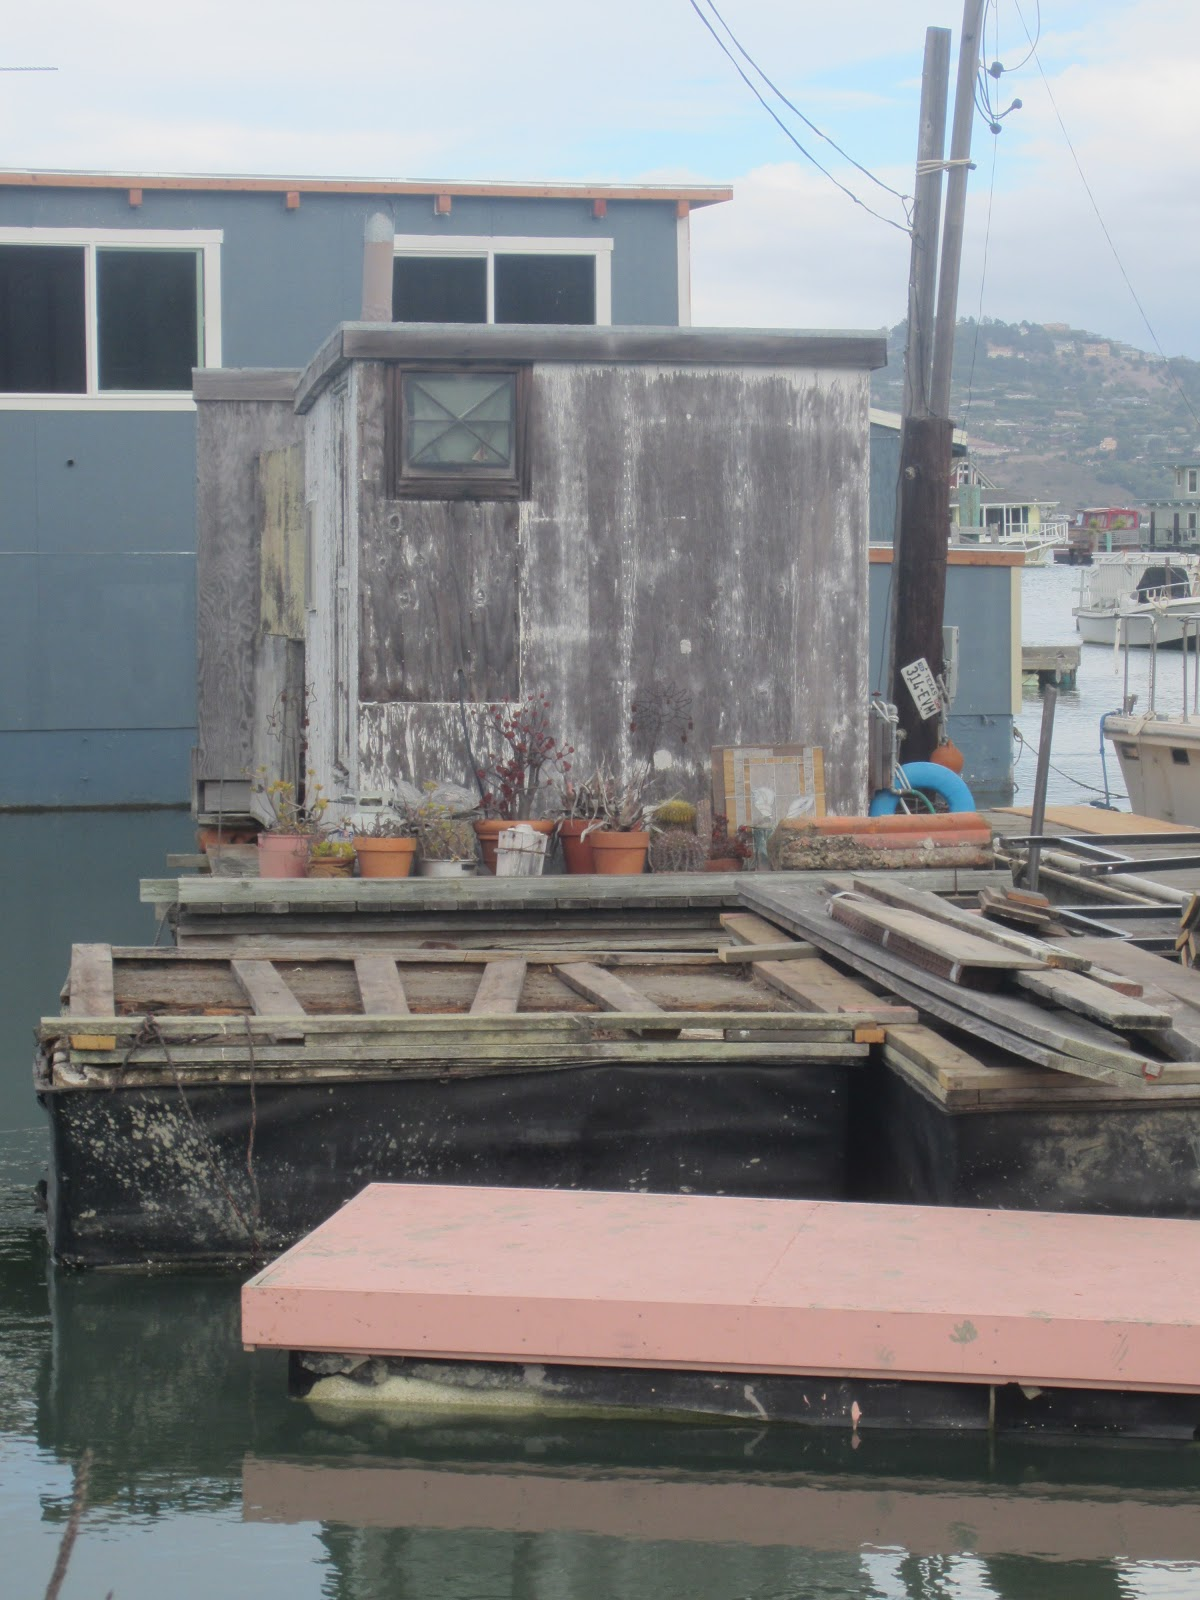 Watch in addition DIYFloating Dock further Joliboat layout additionally 53 Adventurer Class Houseboat furthermore Shanty Boat. on pontoon houseboat plans